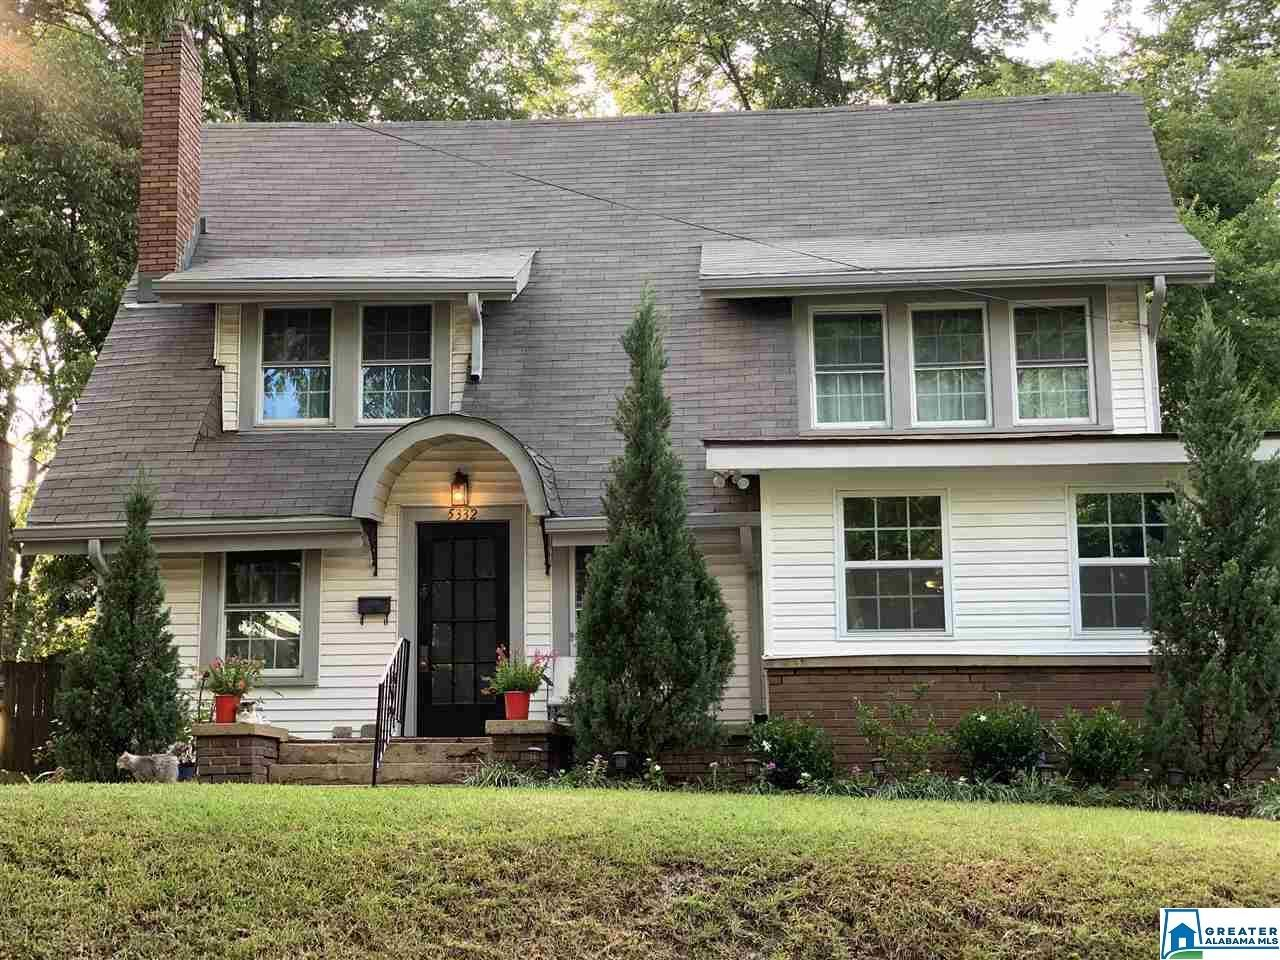 5332 5TH TERR, Birmingham, AL 35212 - MLS#: 870500